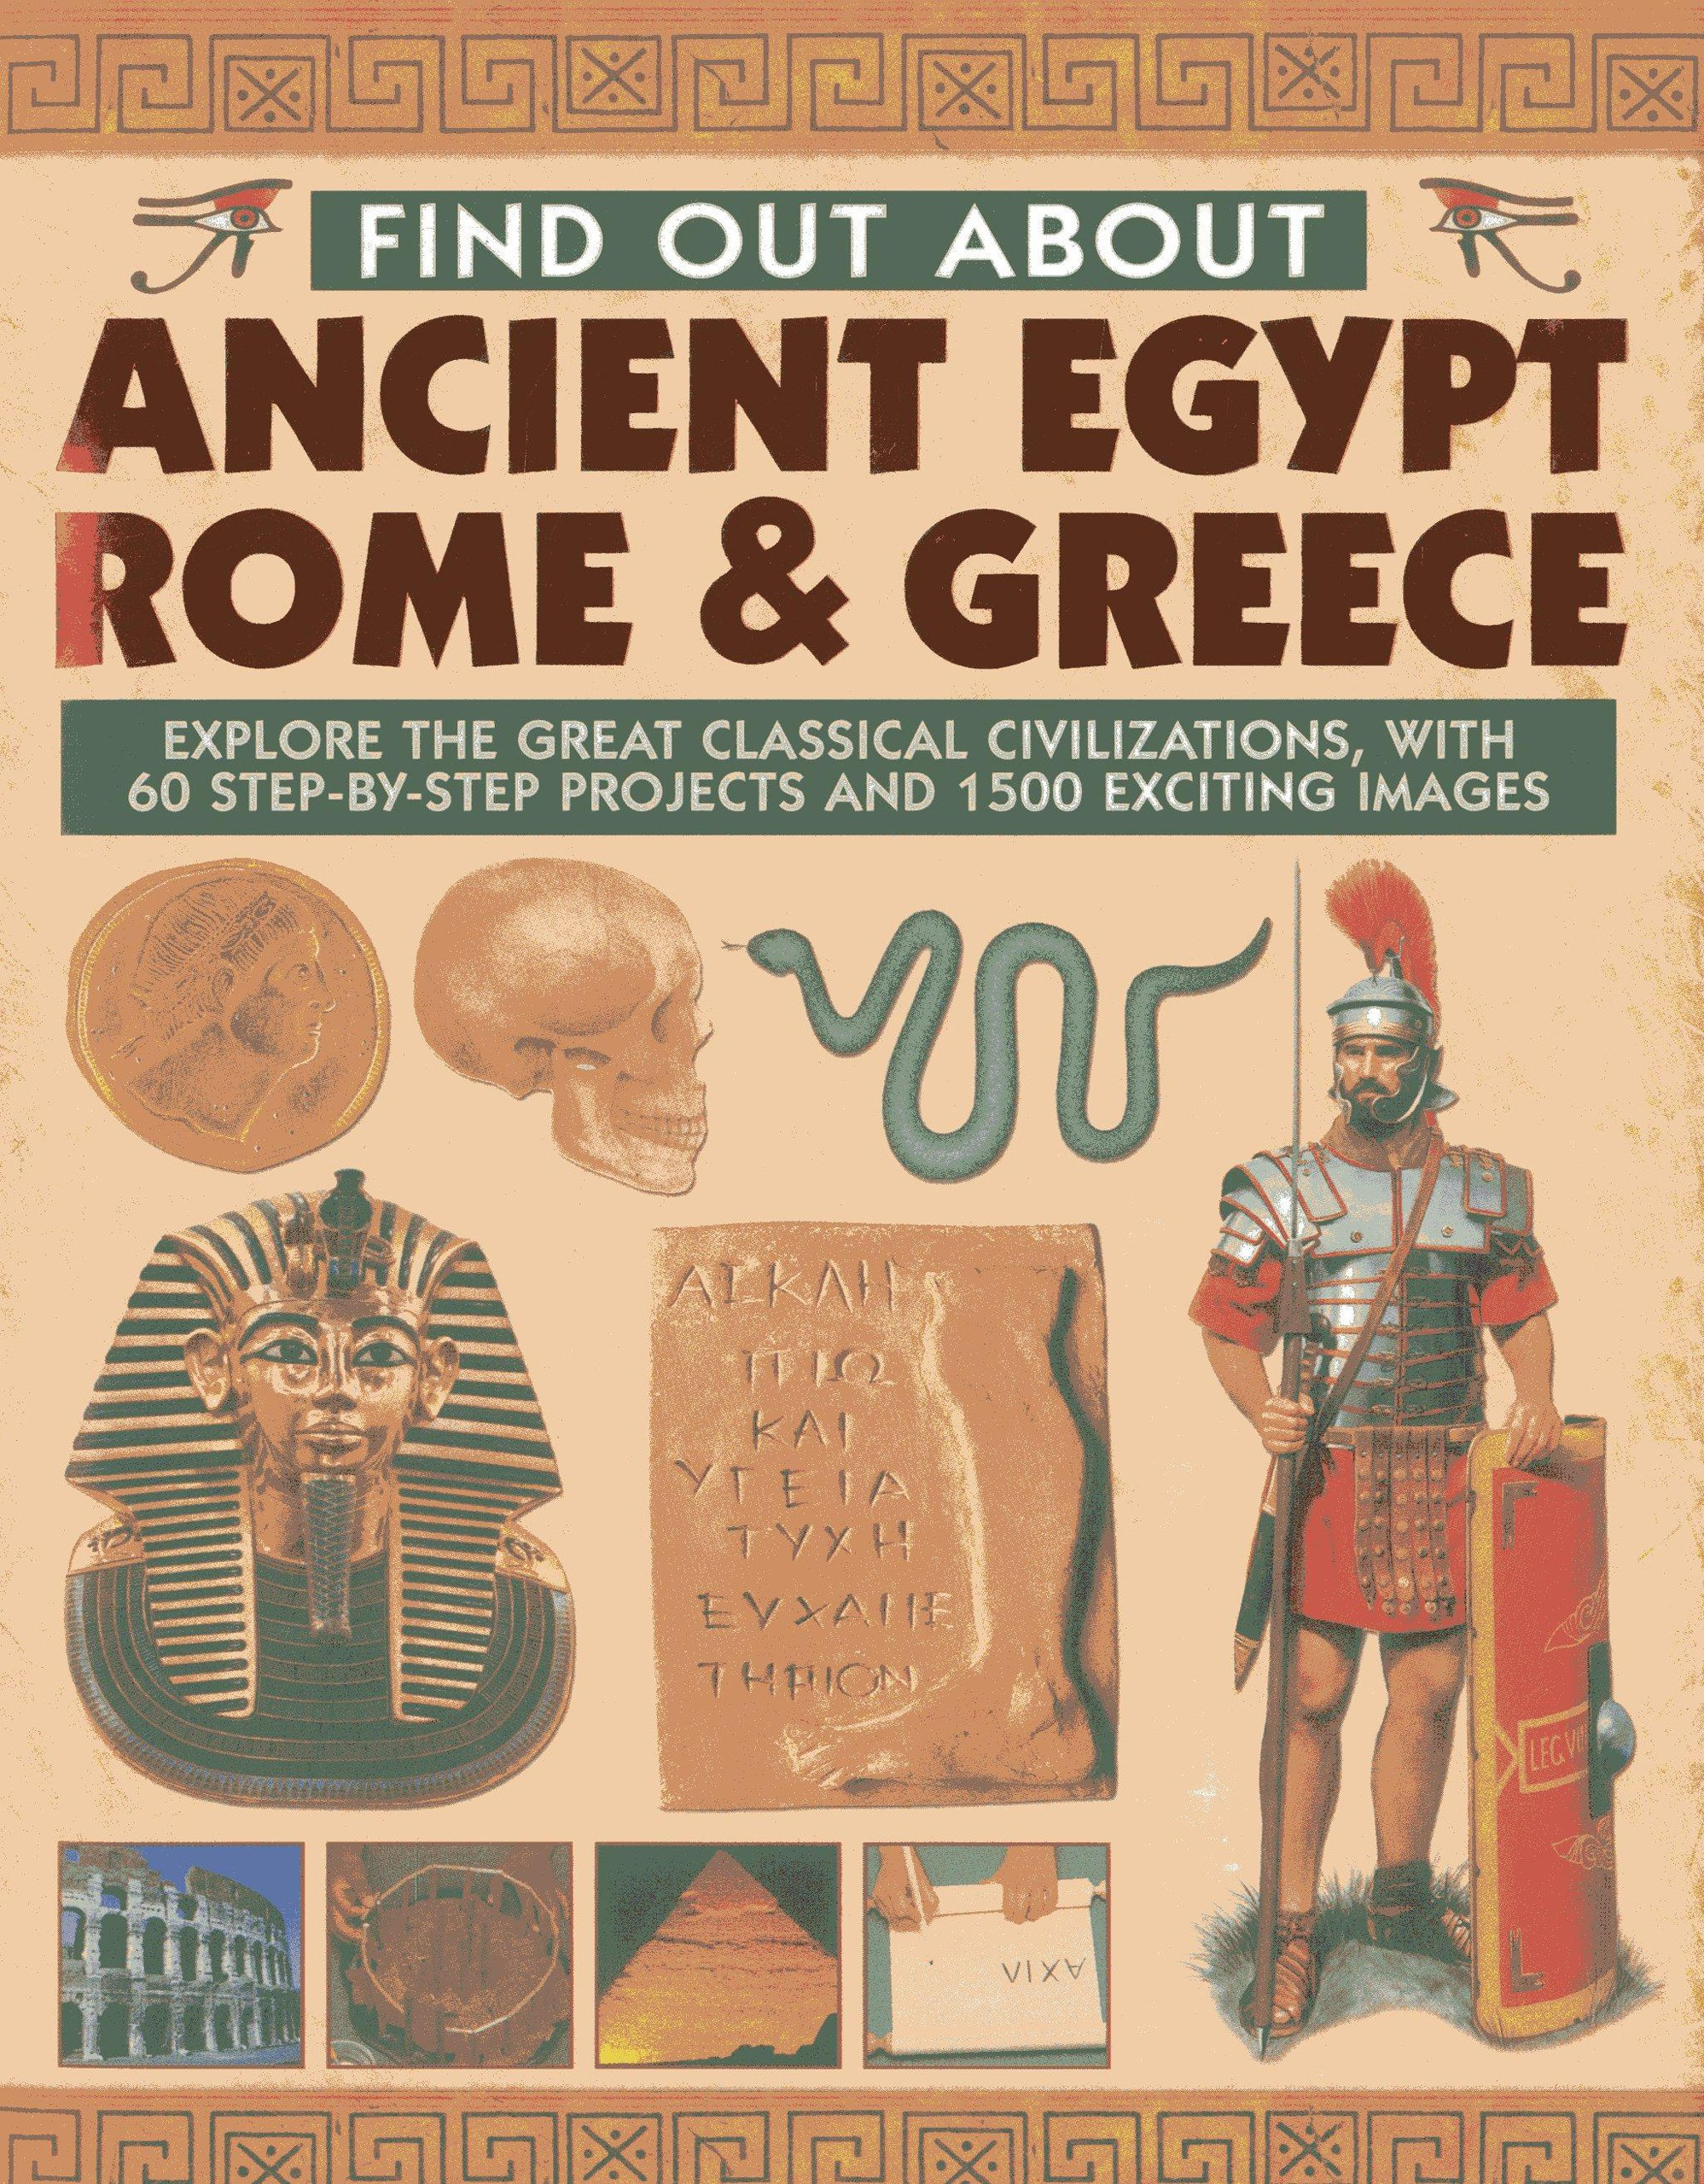 Read Online Find Out About Ancient Egypt, Rome & Greece: Explore the Great Classical Civilizations, With 60 Step-by-Step Projects and 1500 Exciting Images pdf epub